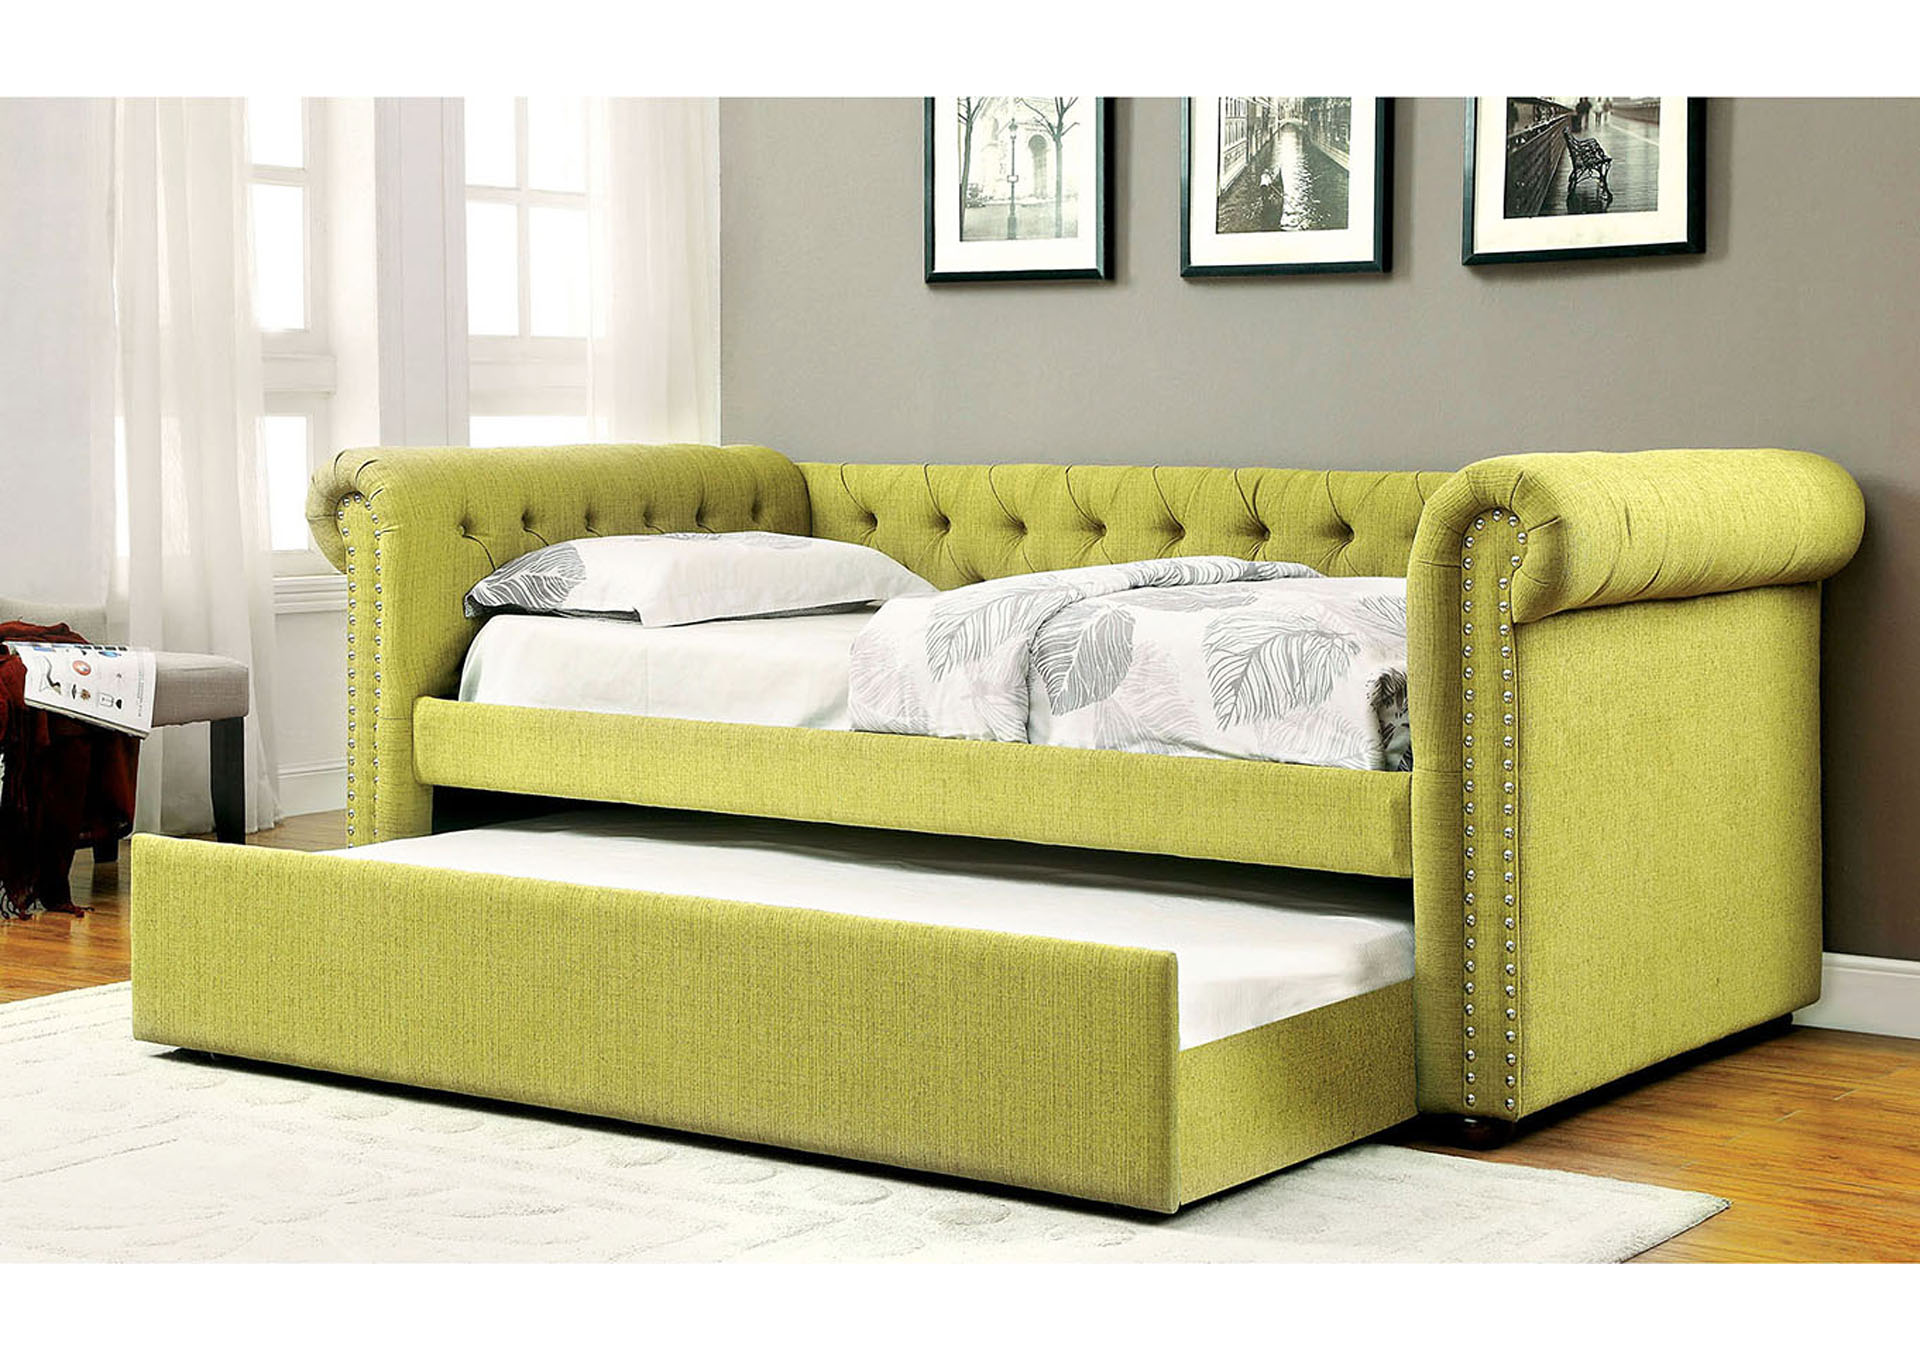 Leanna Lemongrass Daybed w/Trundle,Furniture of America